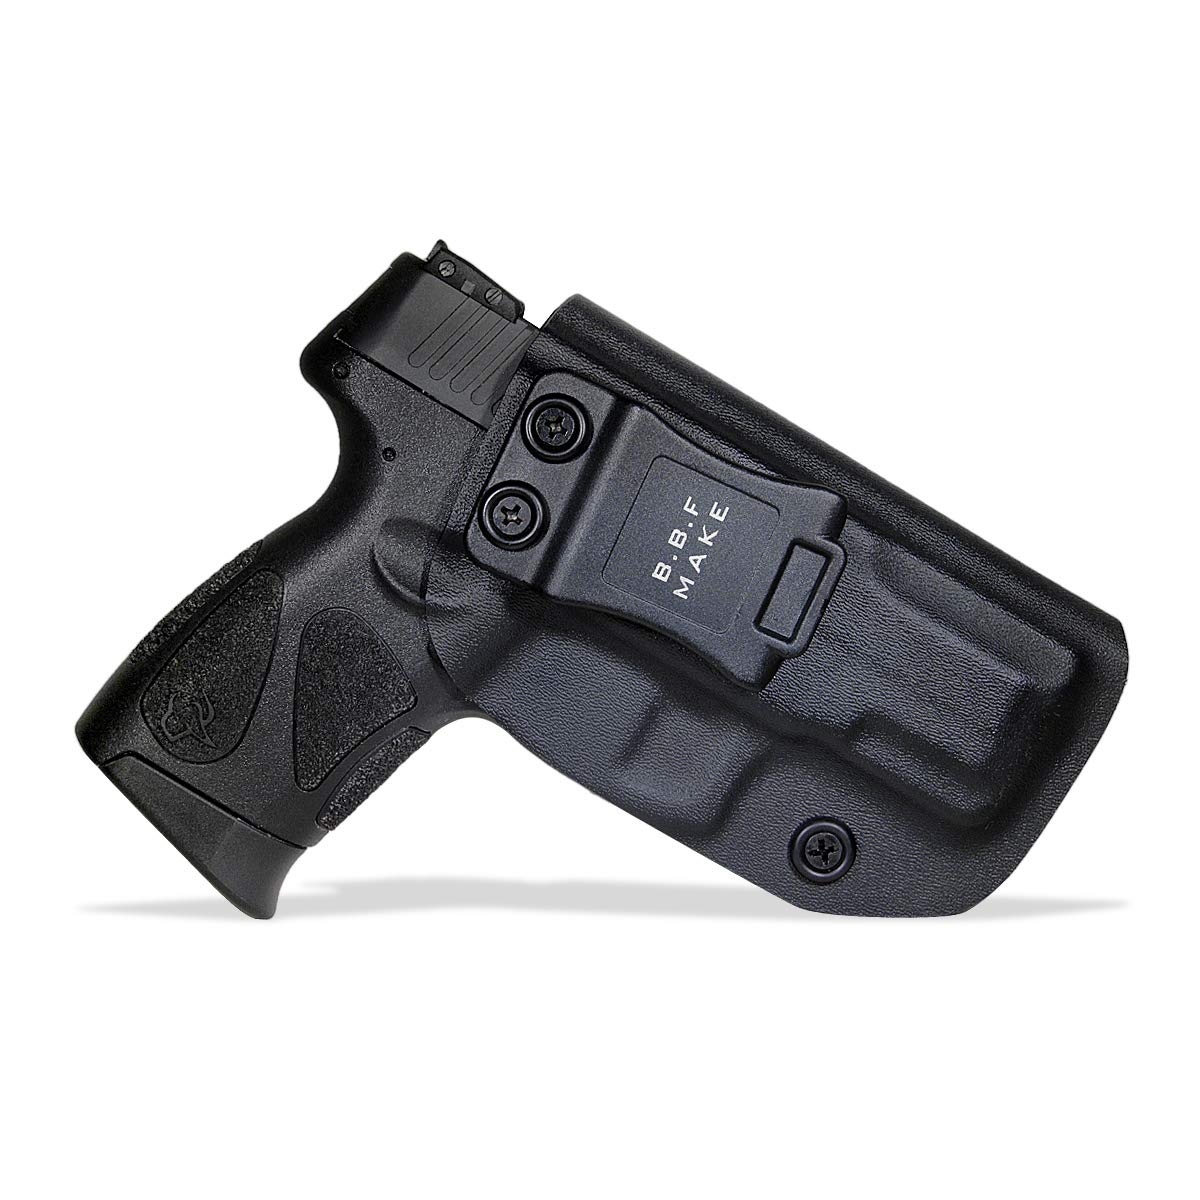 B.B.F Make IWB KYDEX Holster Fit: Taurus G2C & Millennium G2 PT111 / PT140 | Retired Navy Owned Company | Inside Waistband | Adjustable Cant | US KYDEX Made (Black, Right Hand Draw (IWB)) by B.B.F Make